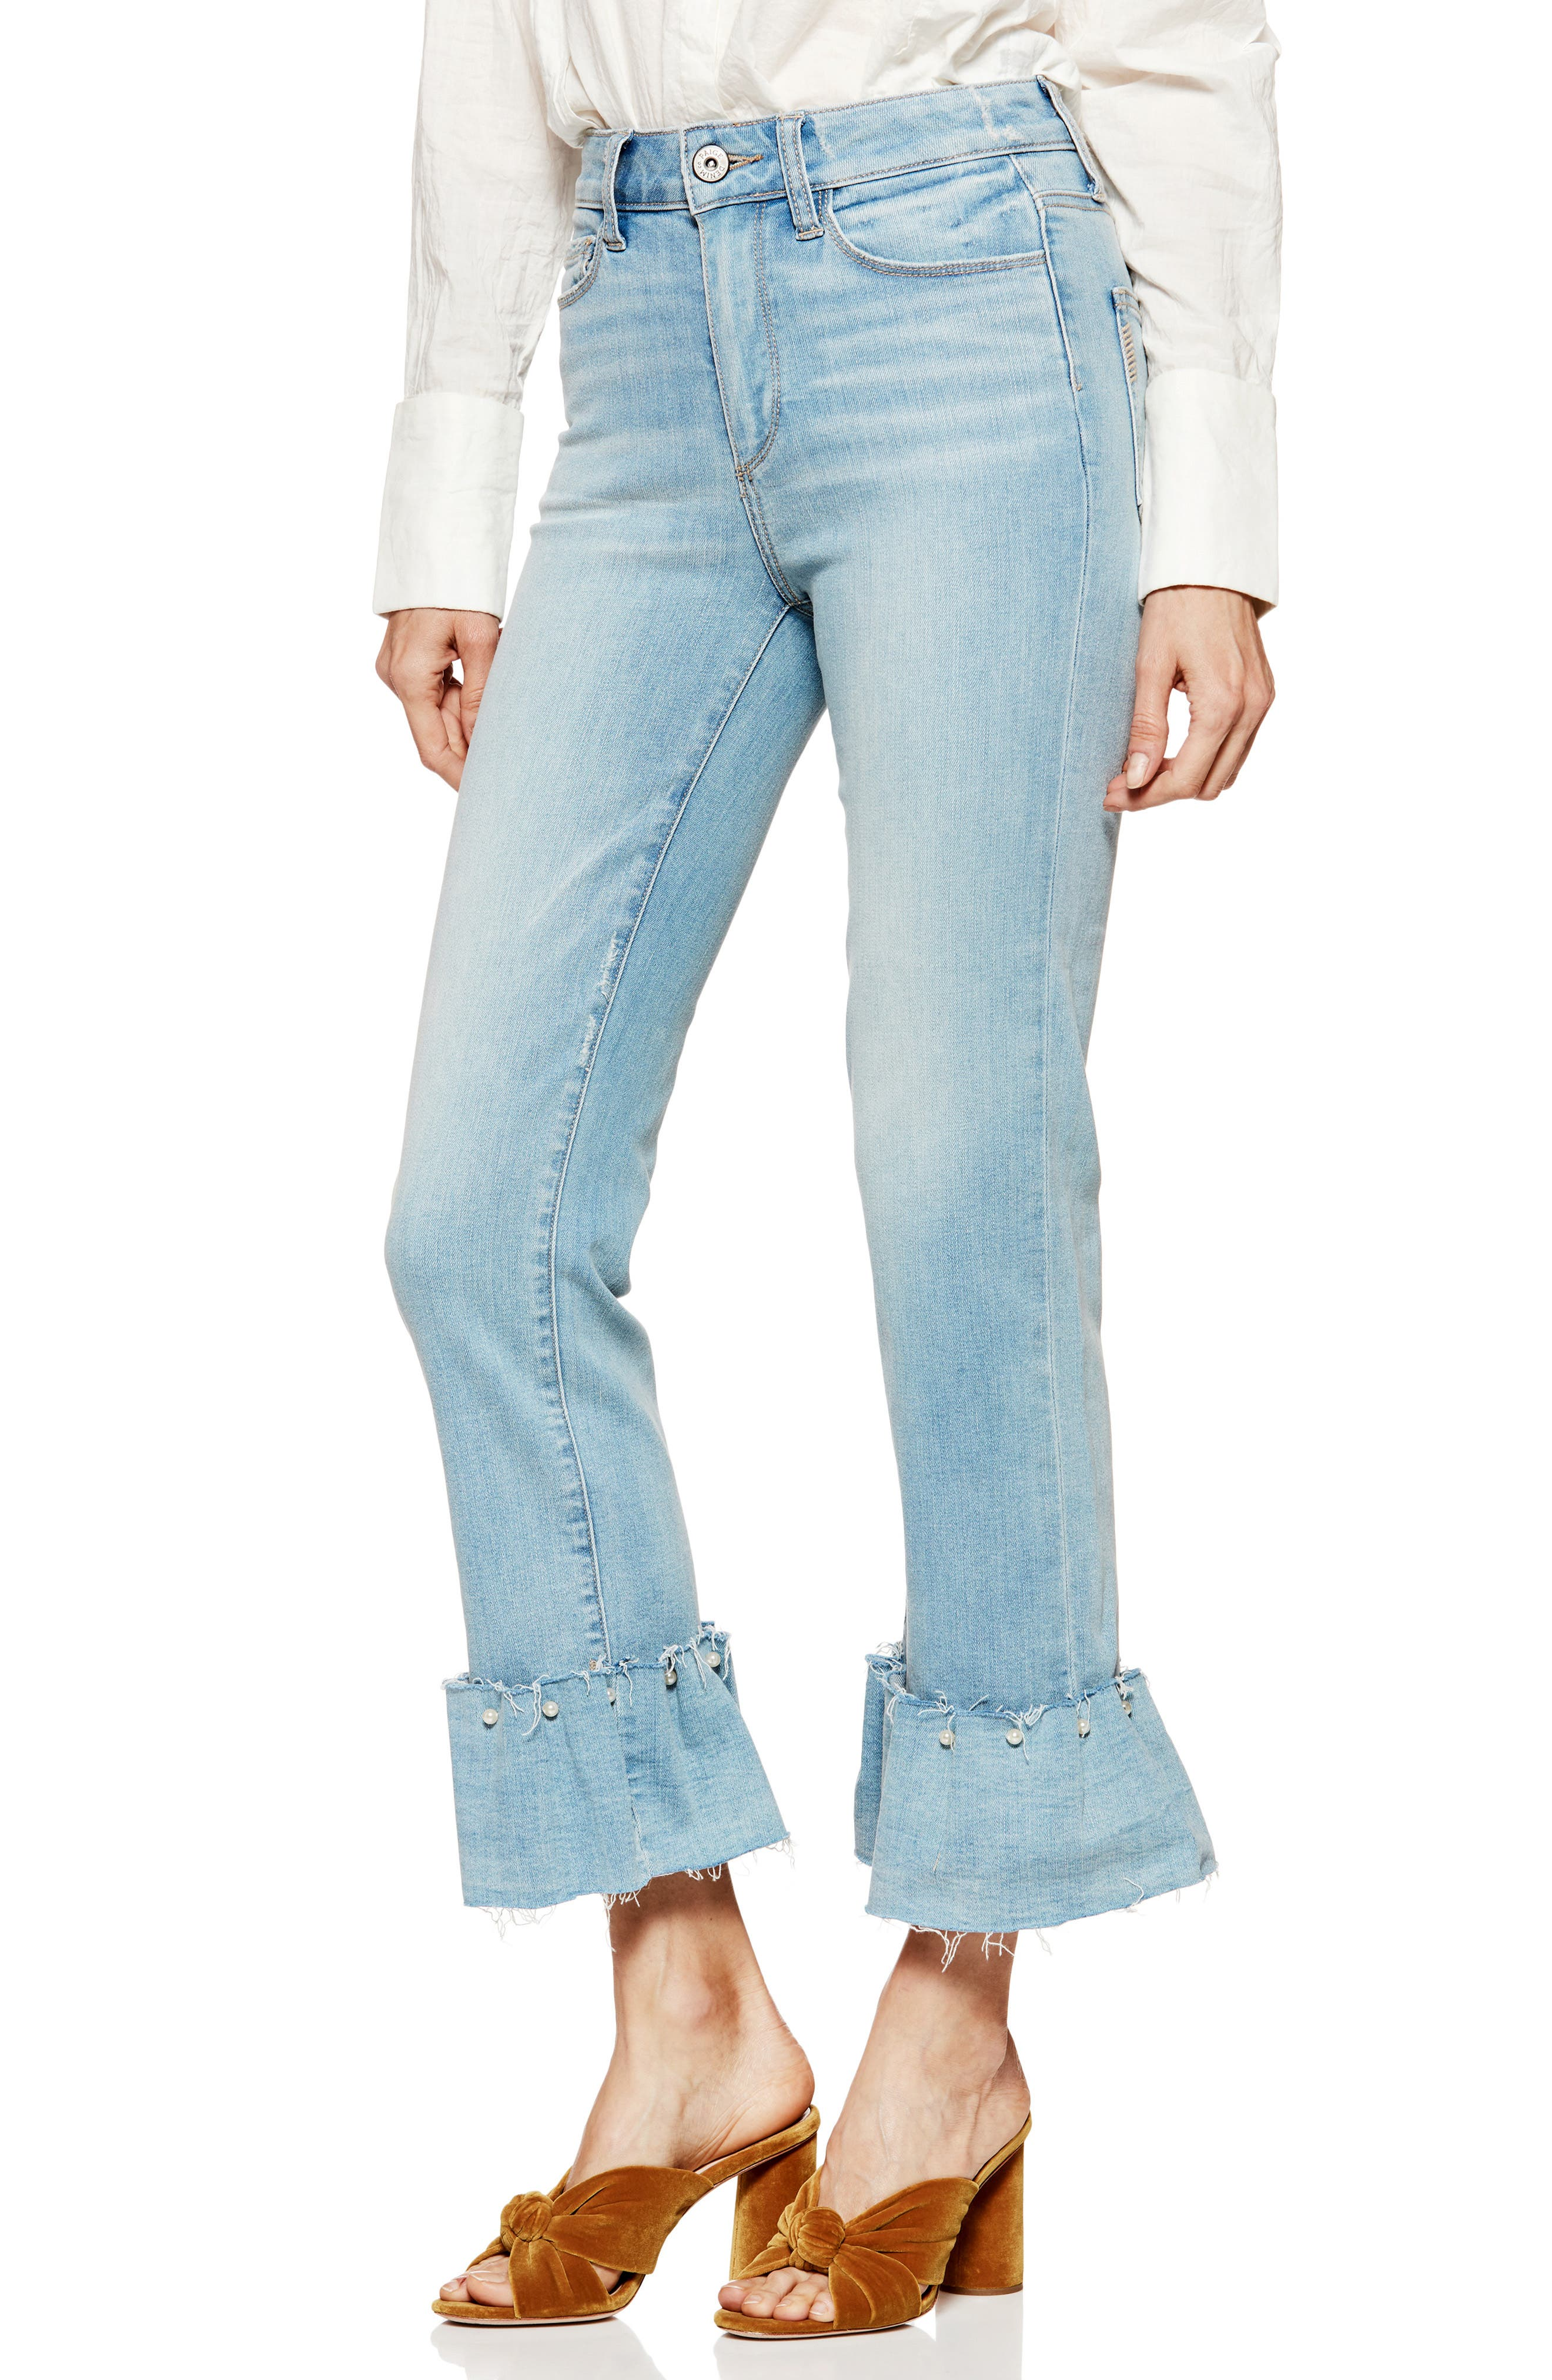 Transcend Vintage - Hoxton Embellished Ruffle High Waist Jeans,                             Main thumbnail 1, color,                             Palms